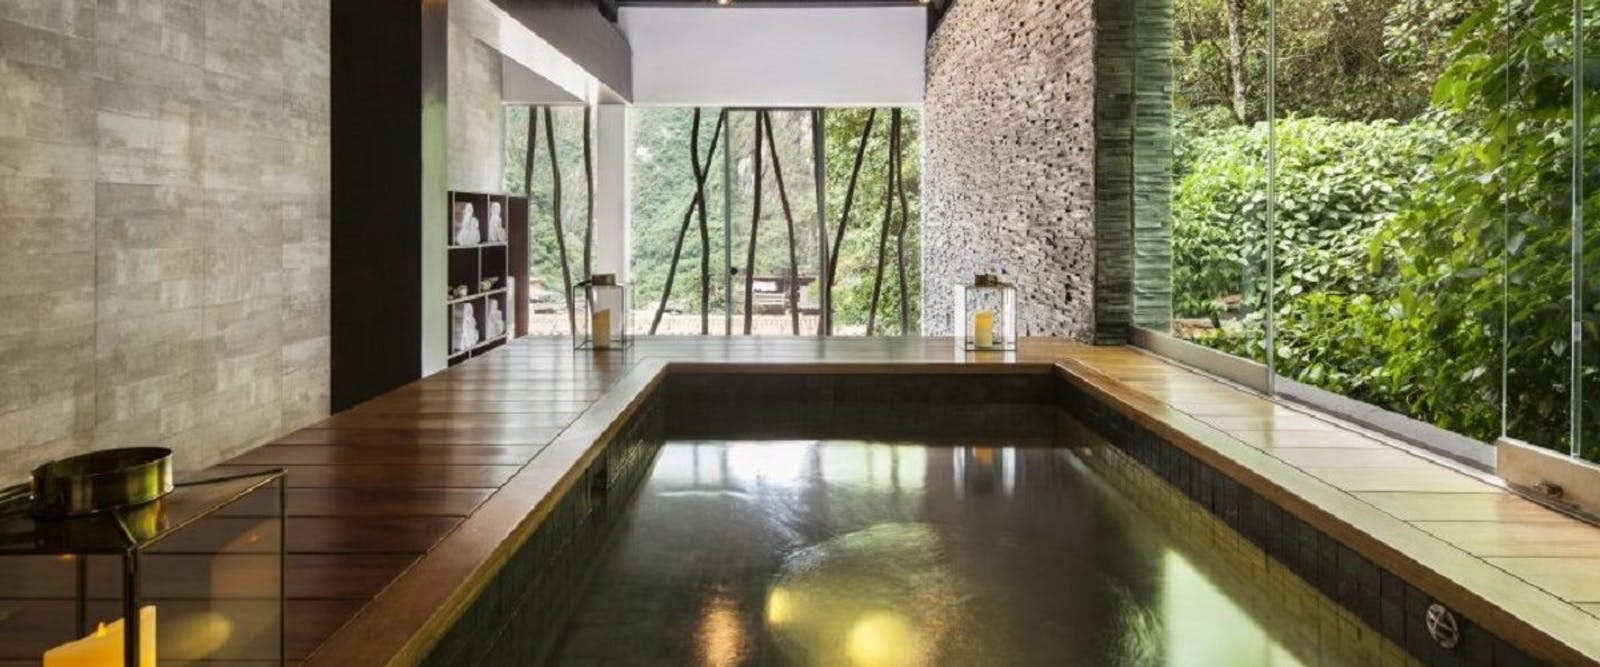 El mapi hotel by inkaterra peru world renowned luxury hotel - Explorer hotel paris swimming pool ...